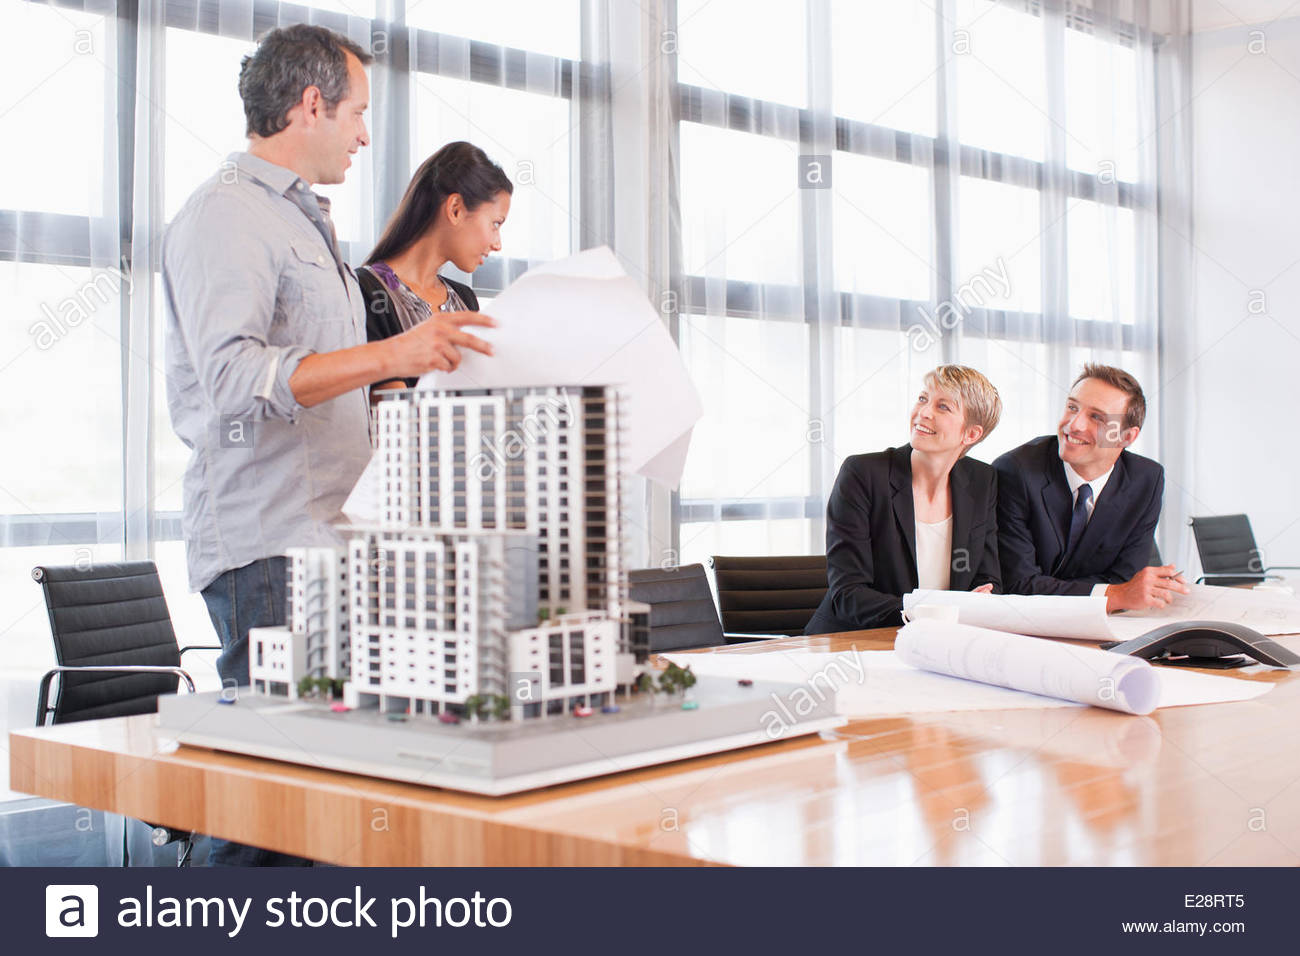 Business people in conference room  with building model - Stock Image